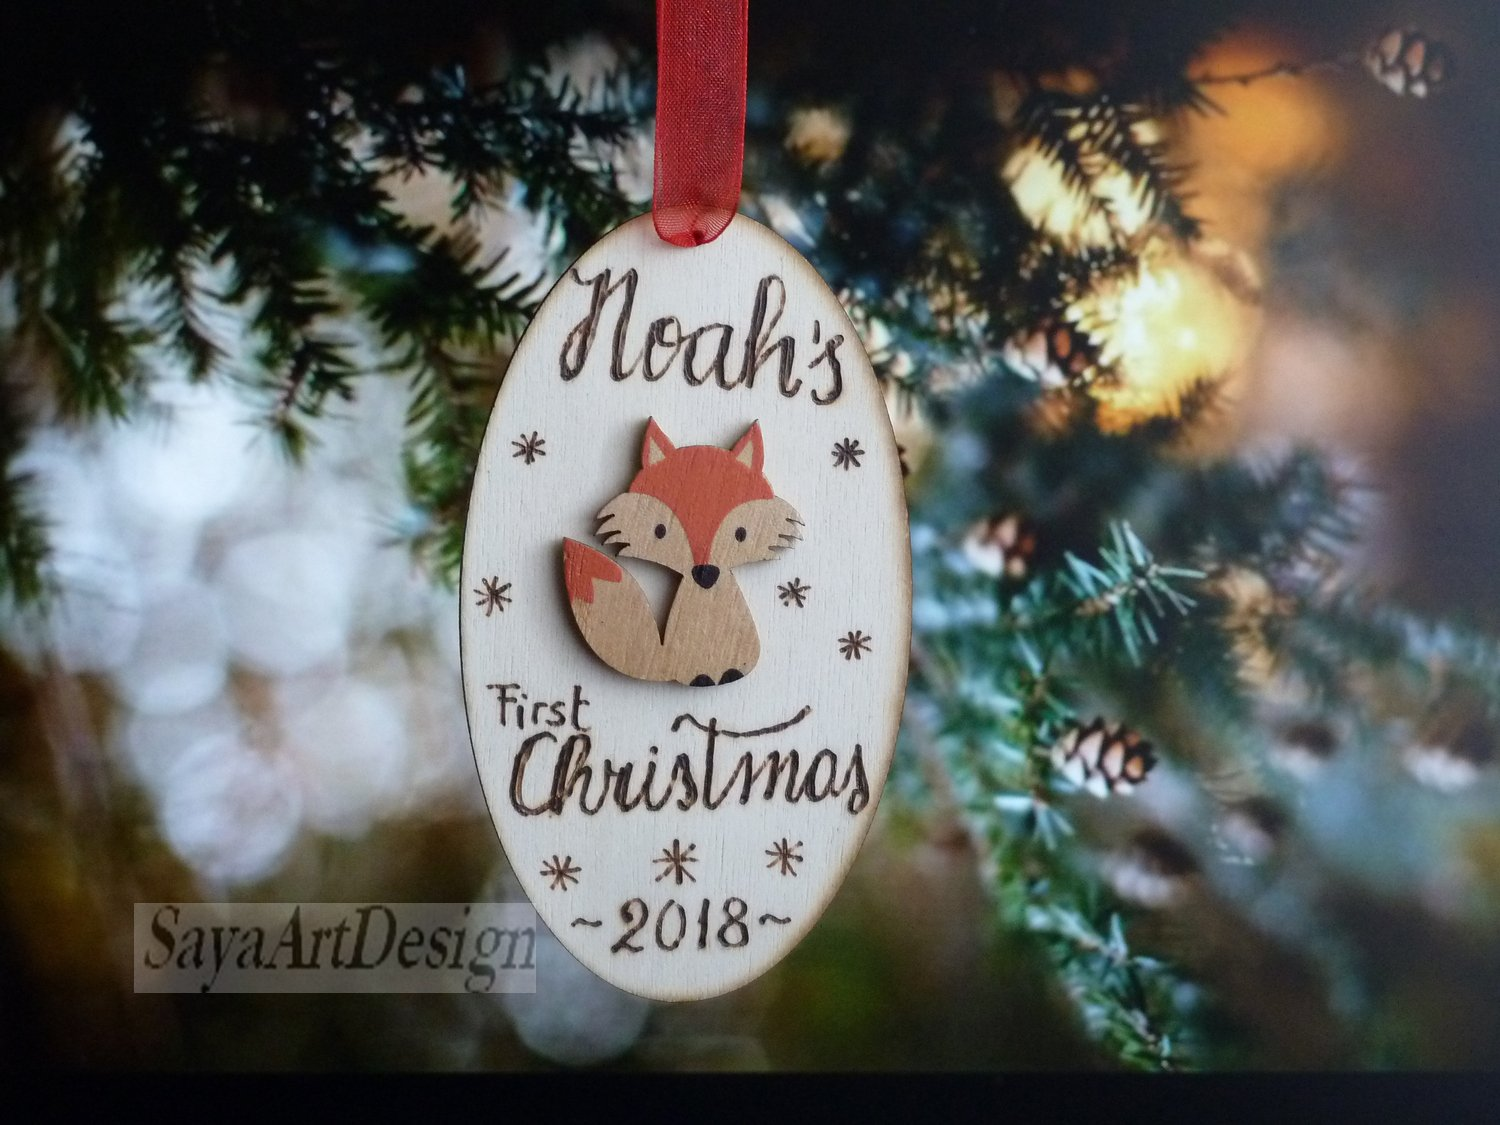 Baby's First Christmas Ornament. Christmas Tree Decor for Newborn. New Parent Gift. Rustic Wood